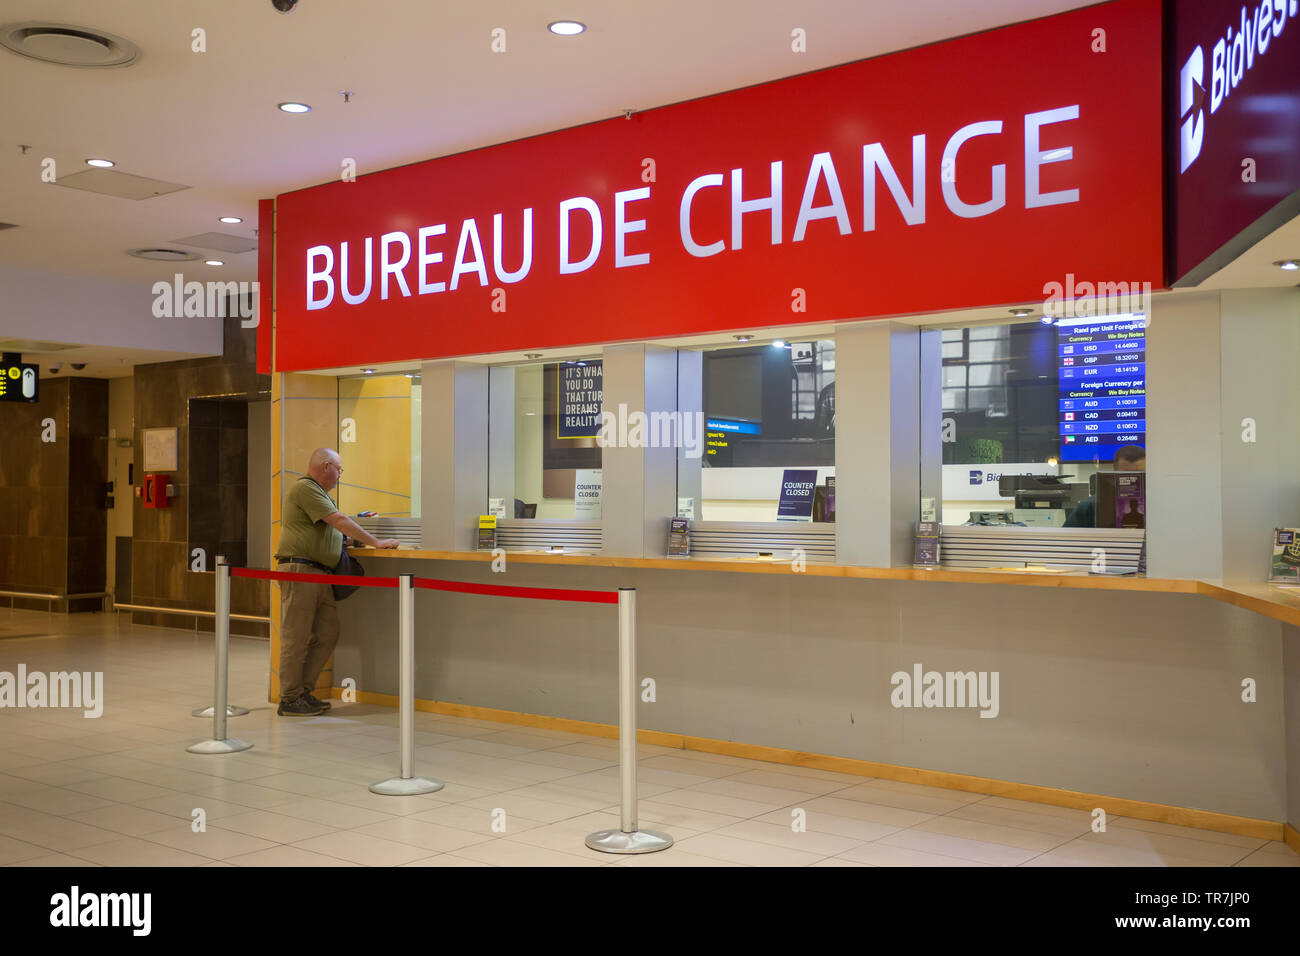 Bureau De Change Foreign Exchange Currency Converter Kiosks With A Tourist At The Counter Doing Some Business At Cape Town International Airport Stock Photo Alamy